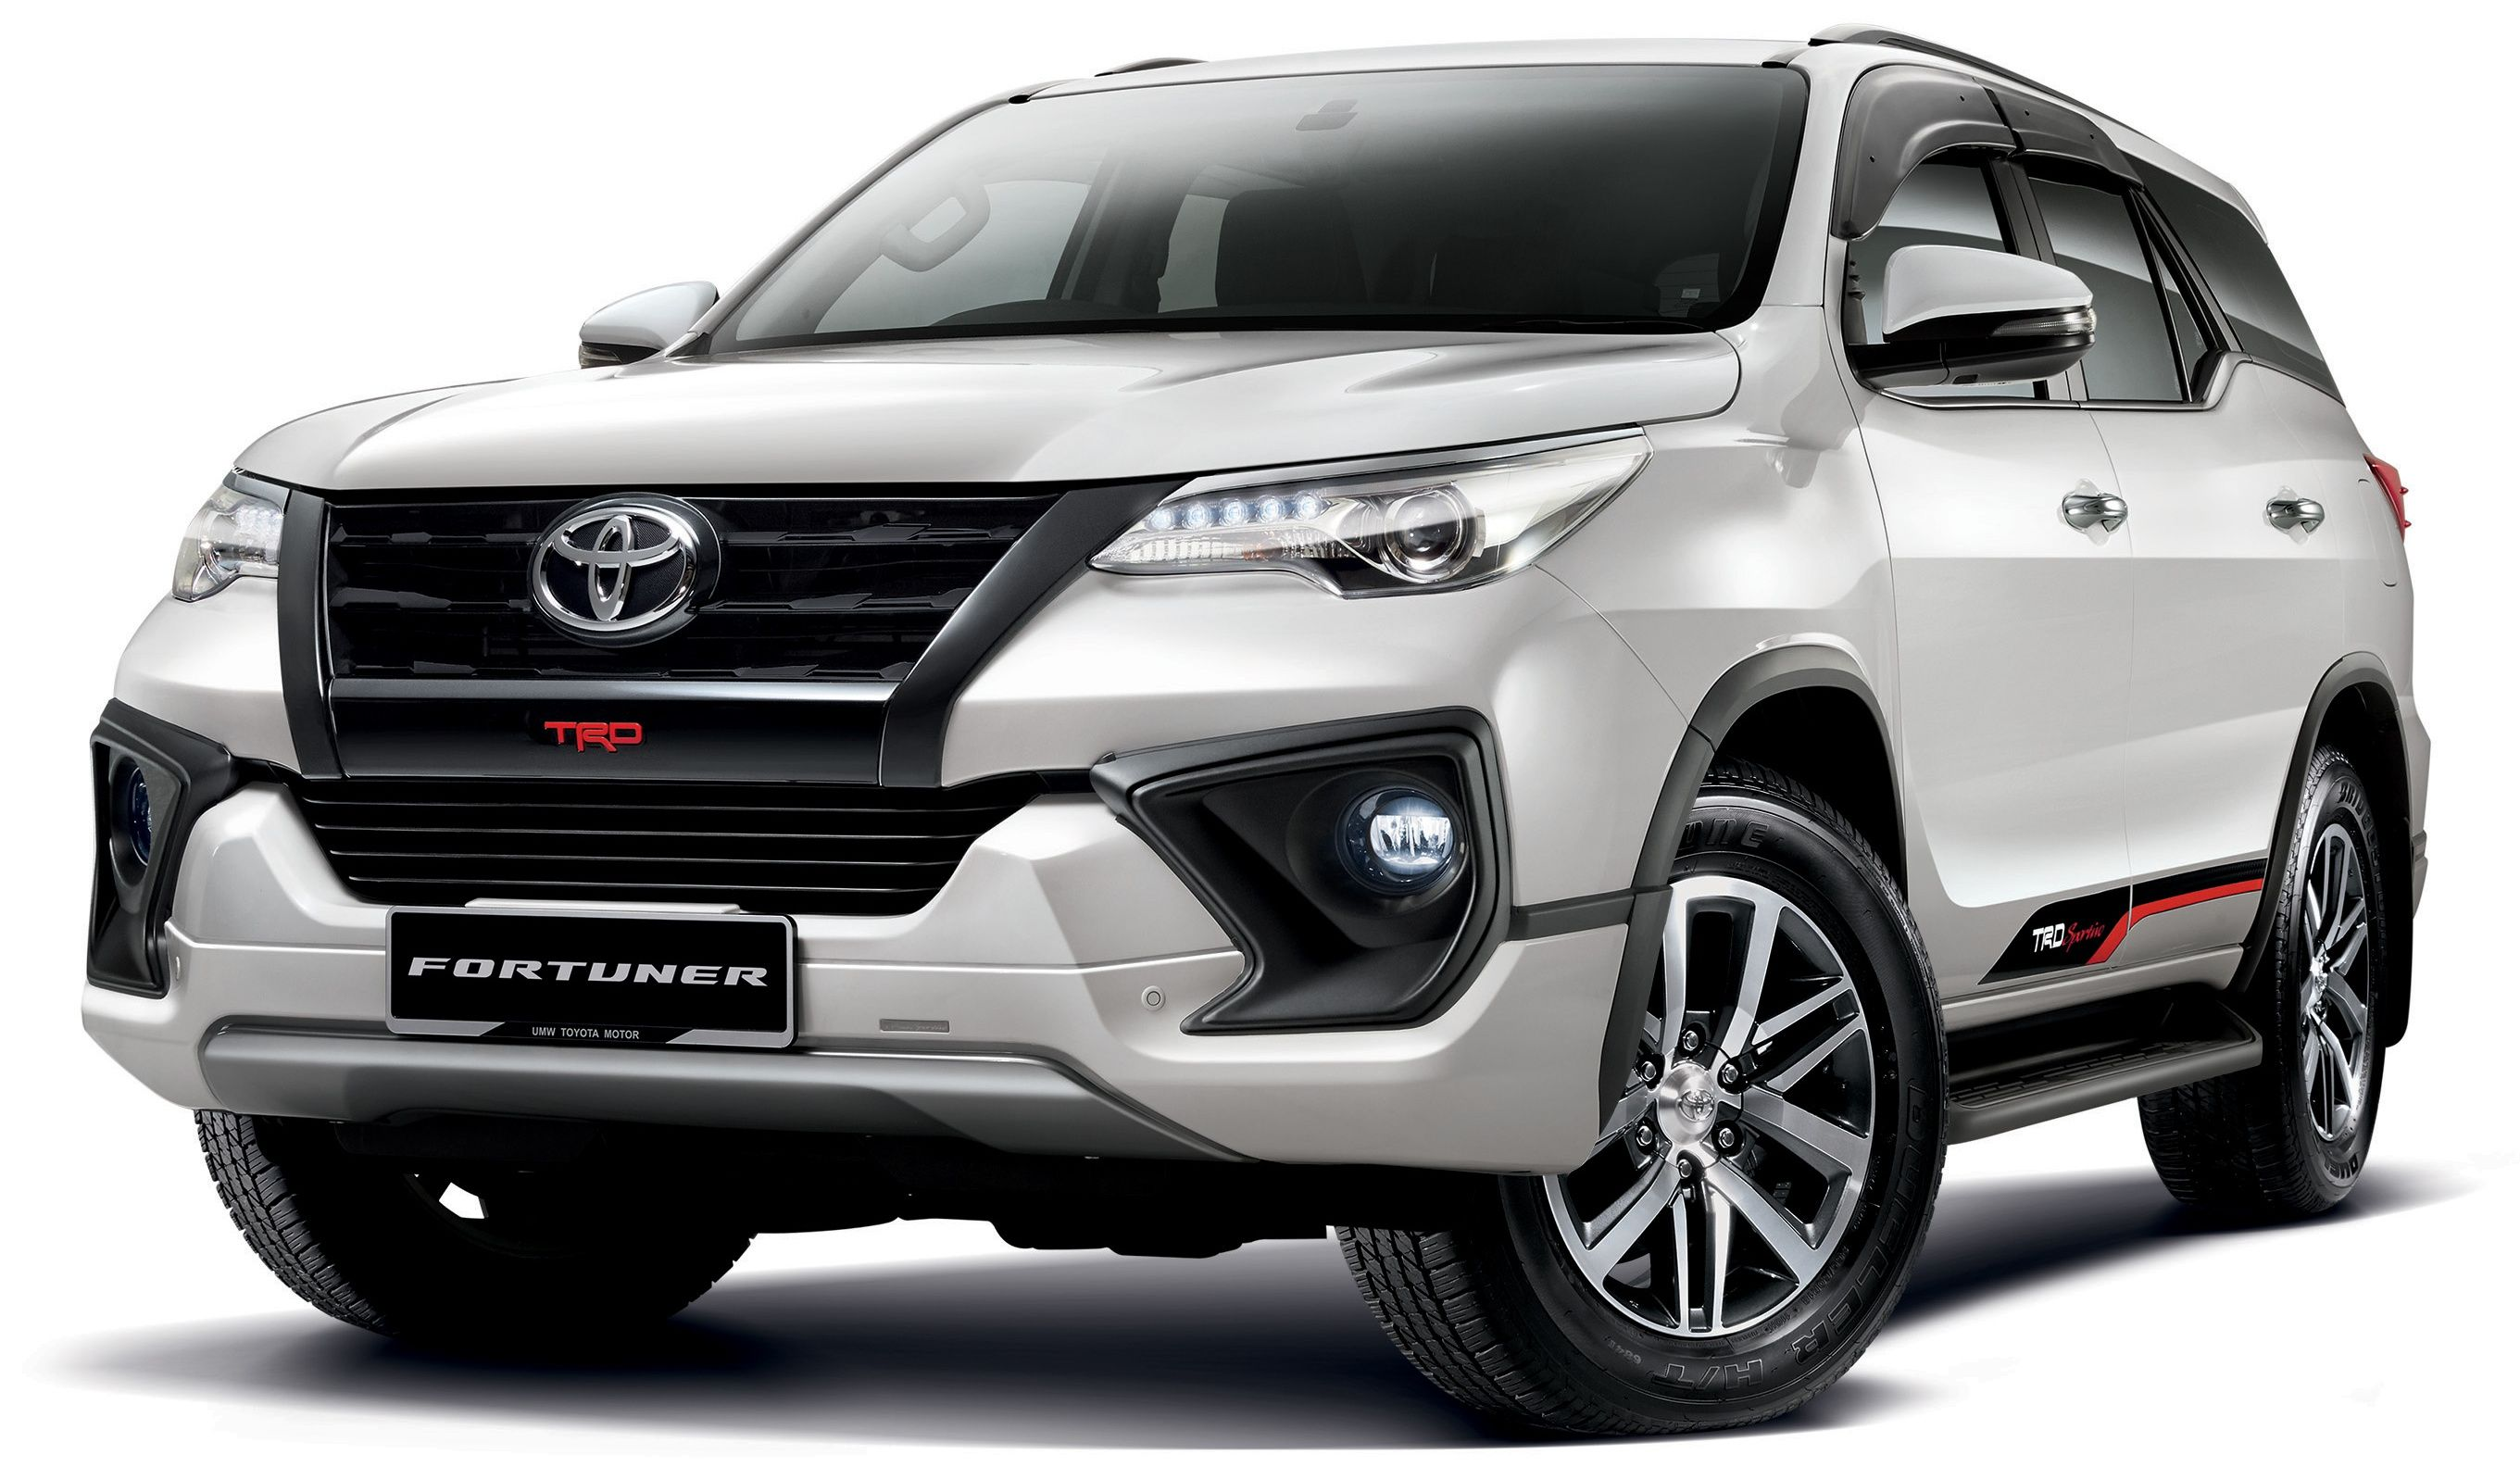 Toyota Fortuner Updated Now On Sale New 2 4 Vrz 4x2 And 4x4 From Rm186k Standard Rear Disc Brakes Paultan Org Suv Cars Toyota Suv